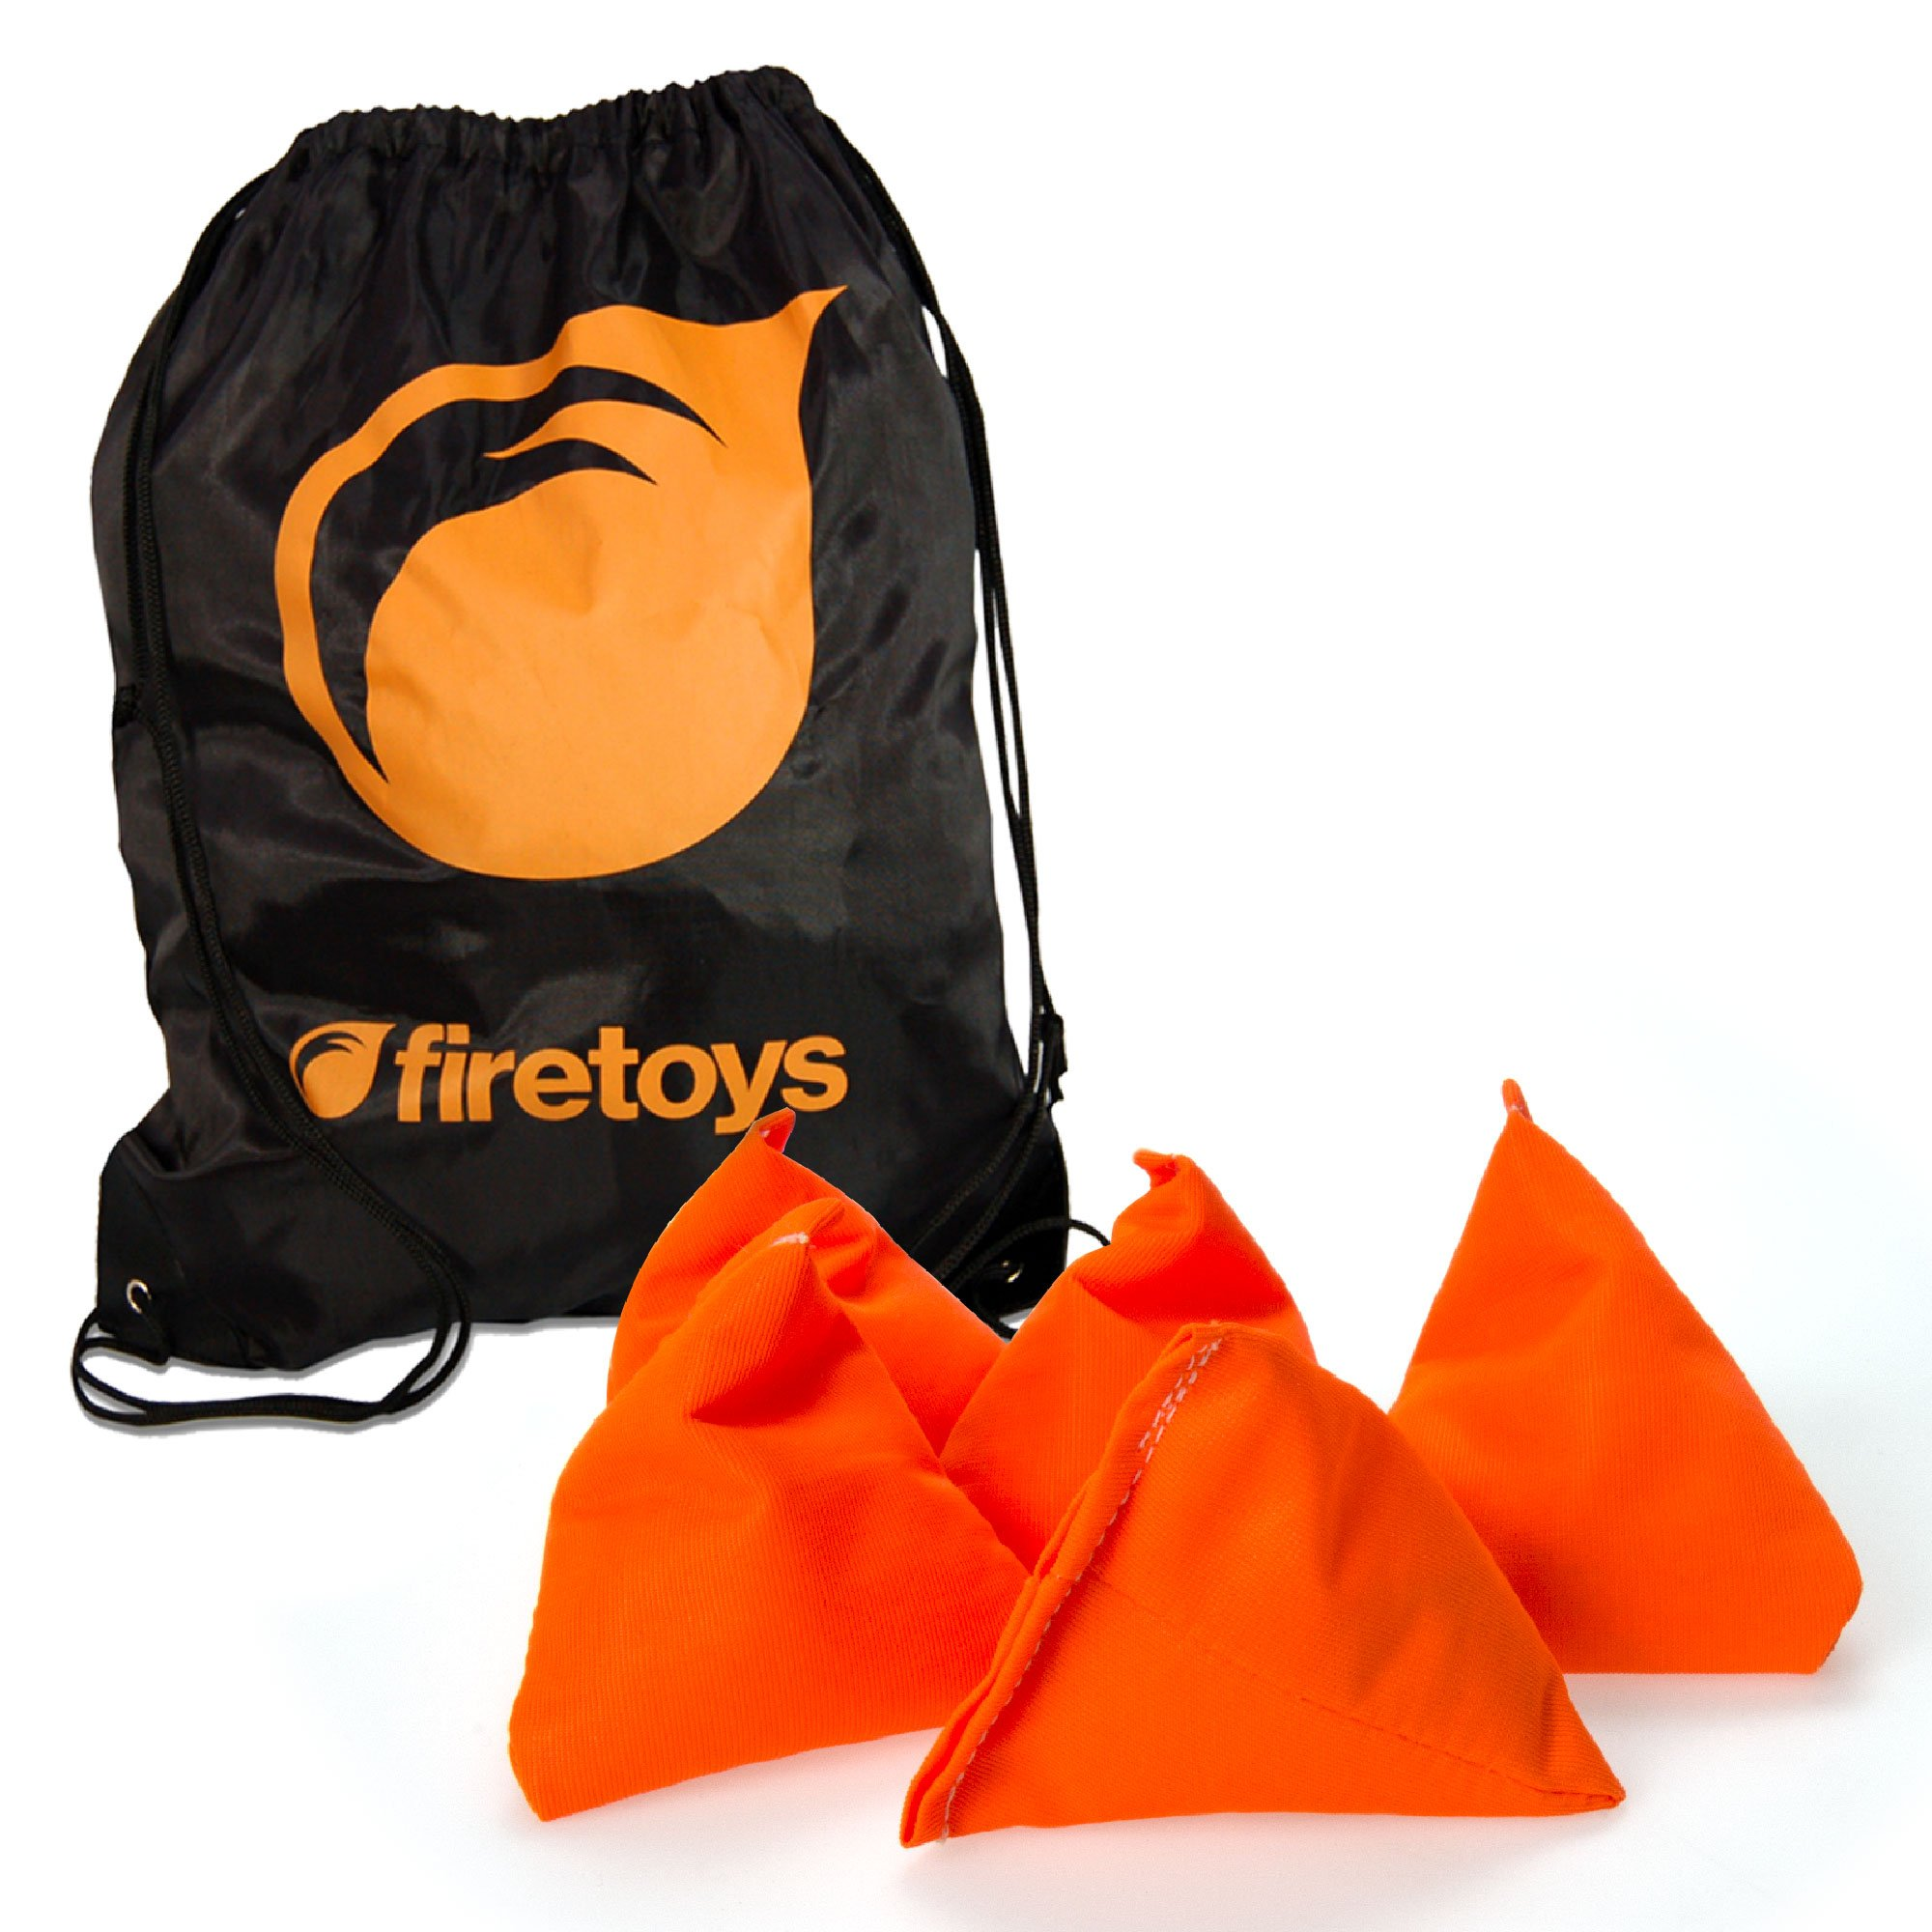 Firetoys Tri-Its UV Juggling Beanbag Set - 5x UV Orange Juggling Pyramids Bag